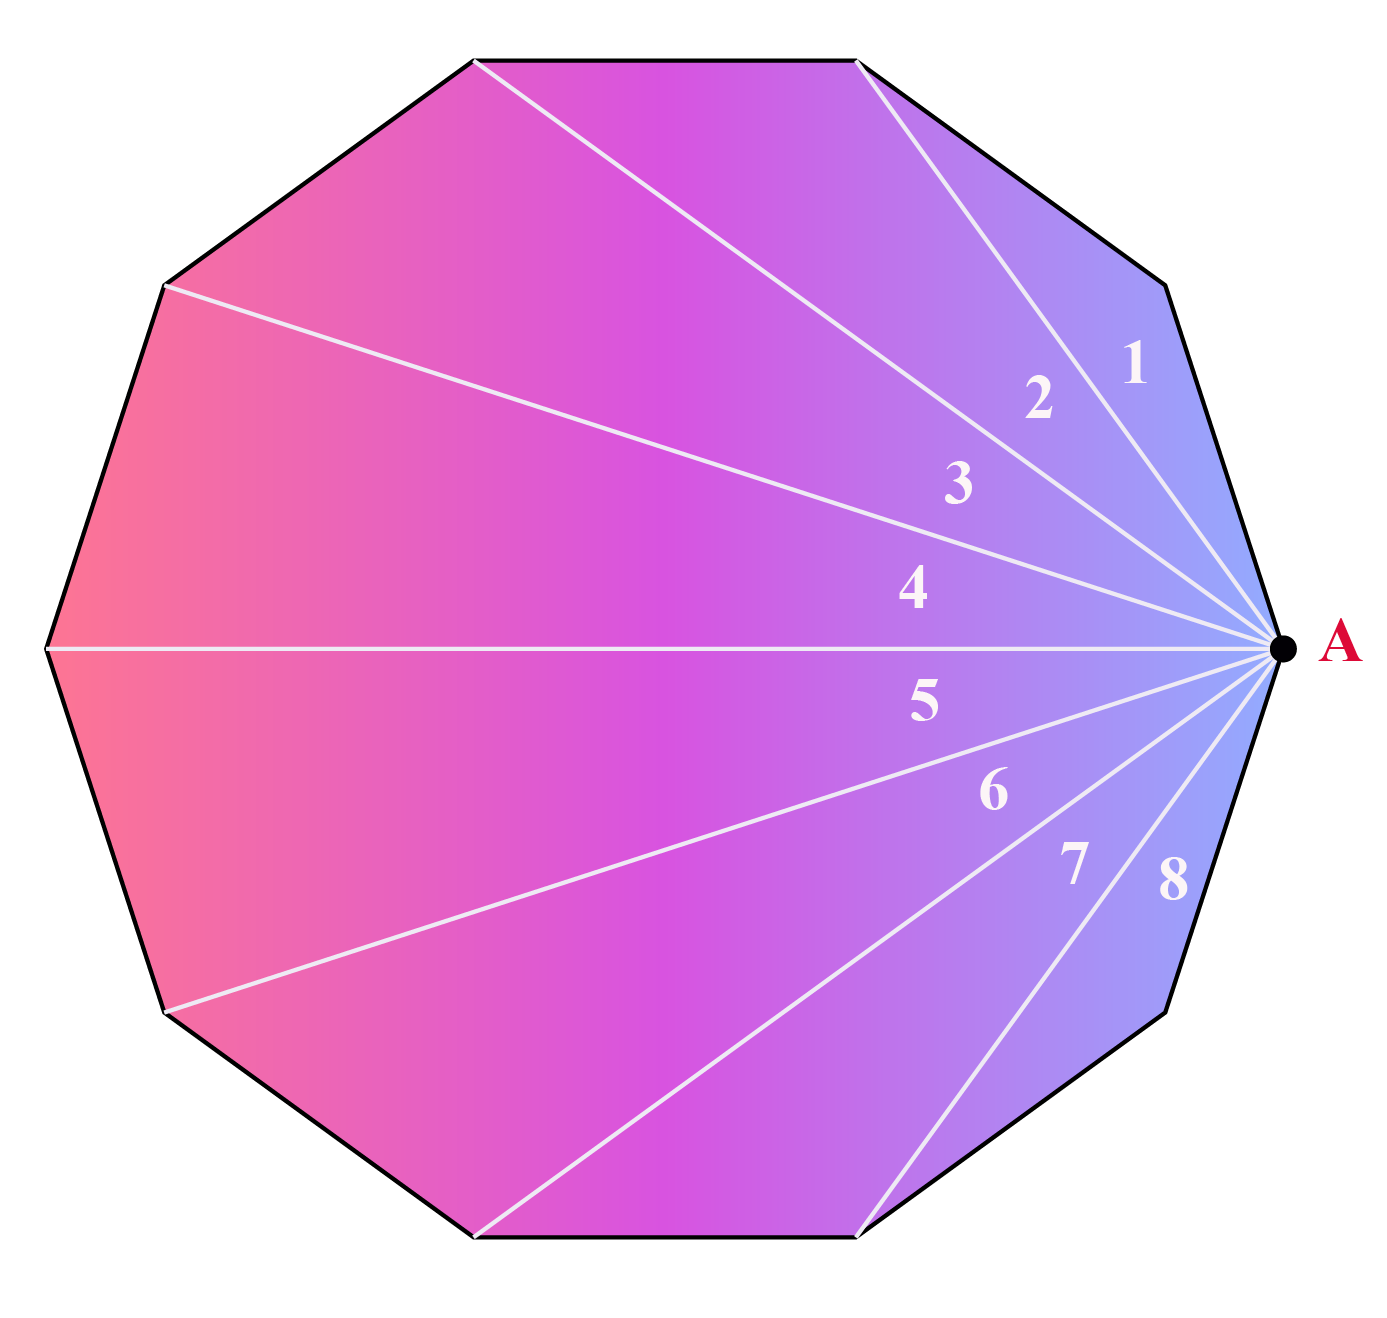 number of triangles in a decagon